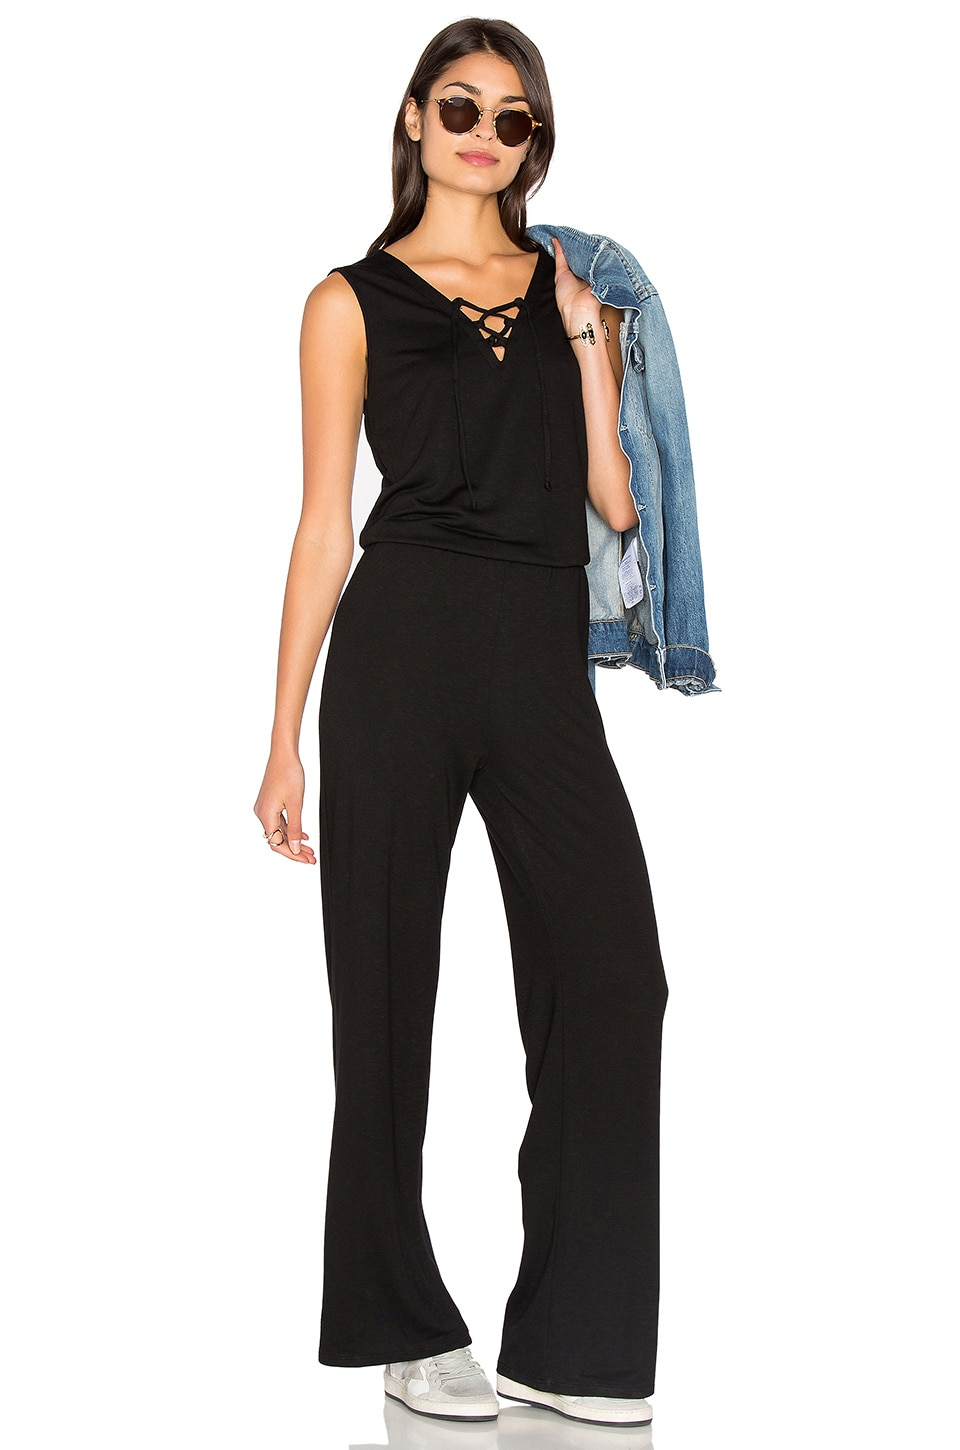 Lanston Lace Up Jumpsuit in Black